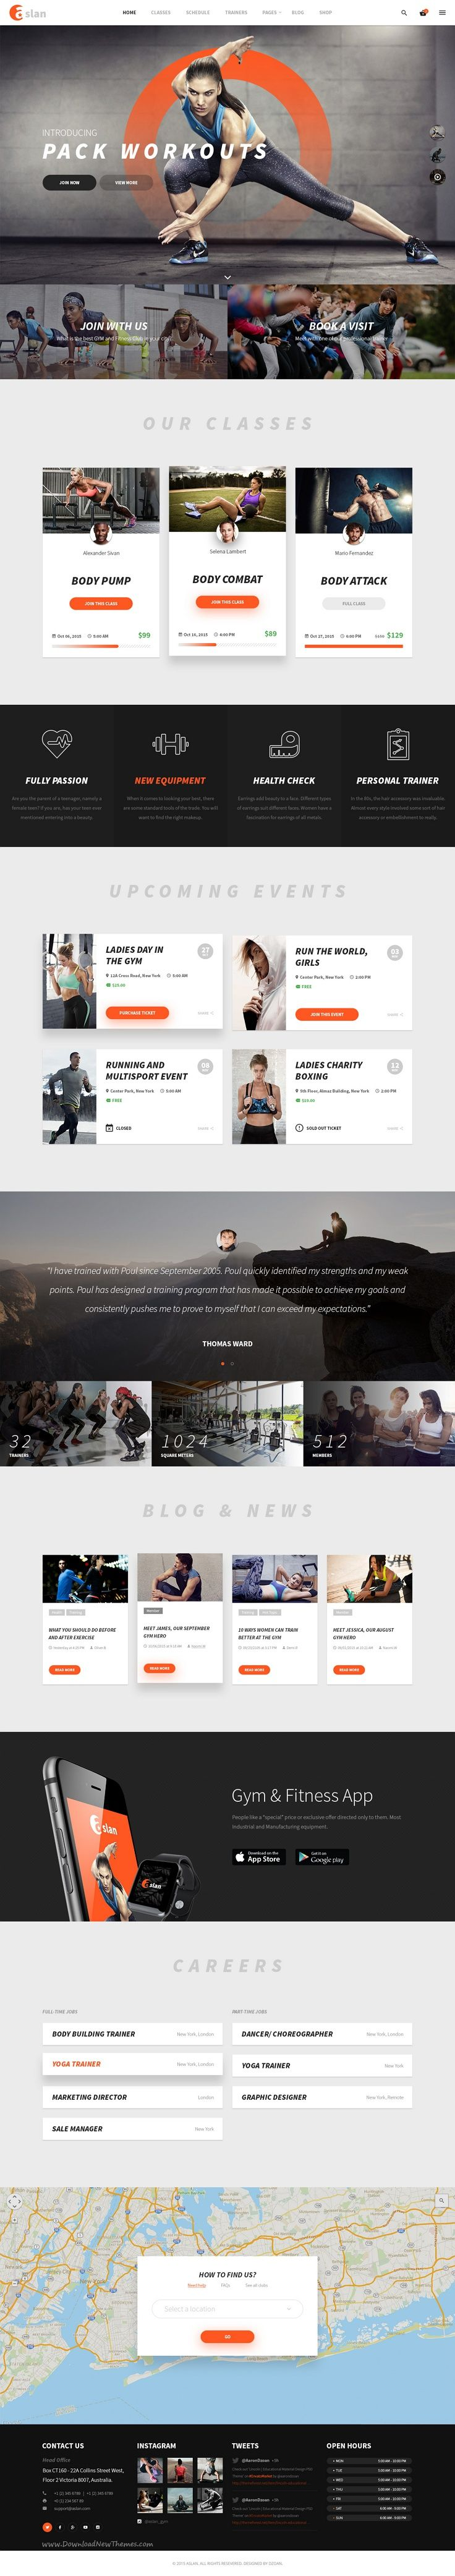 229 best Landing Page Theme images on Pinterest | Website designs ...